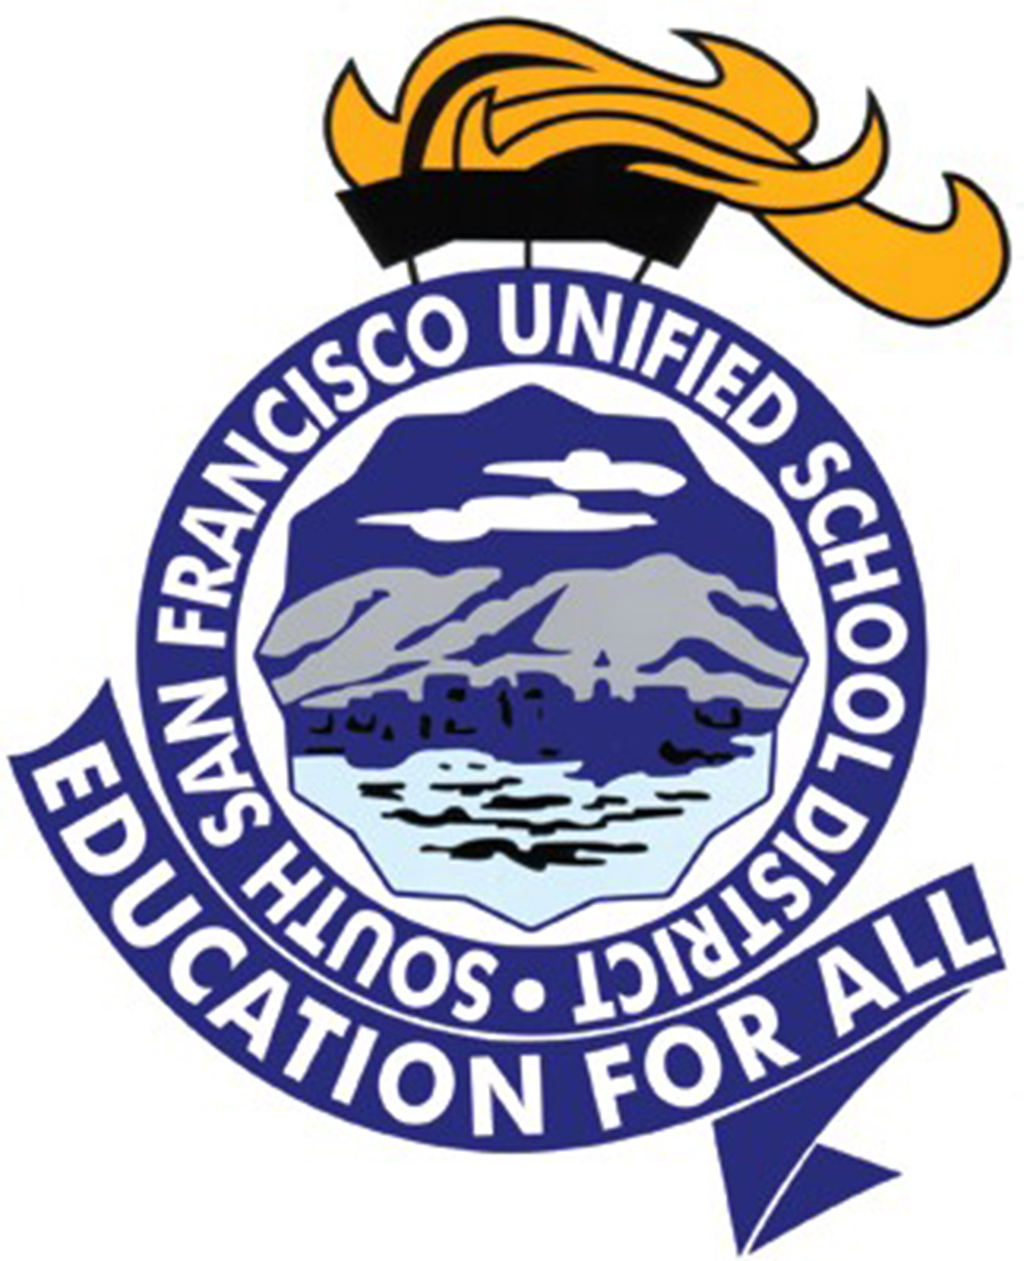 South San Francisco Unified School District logo